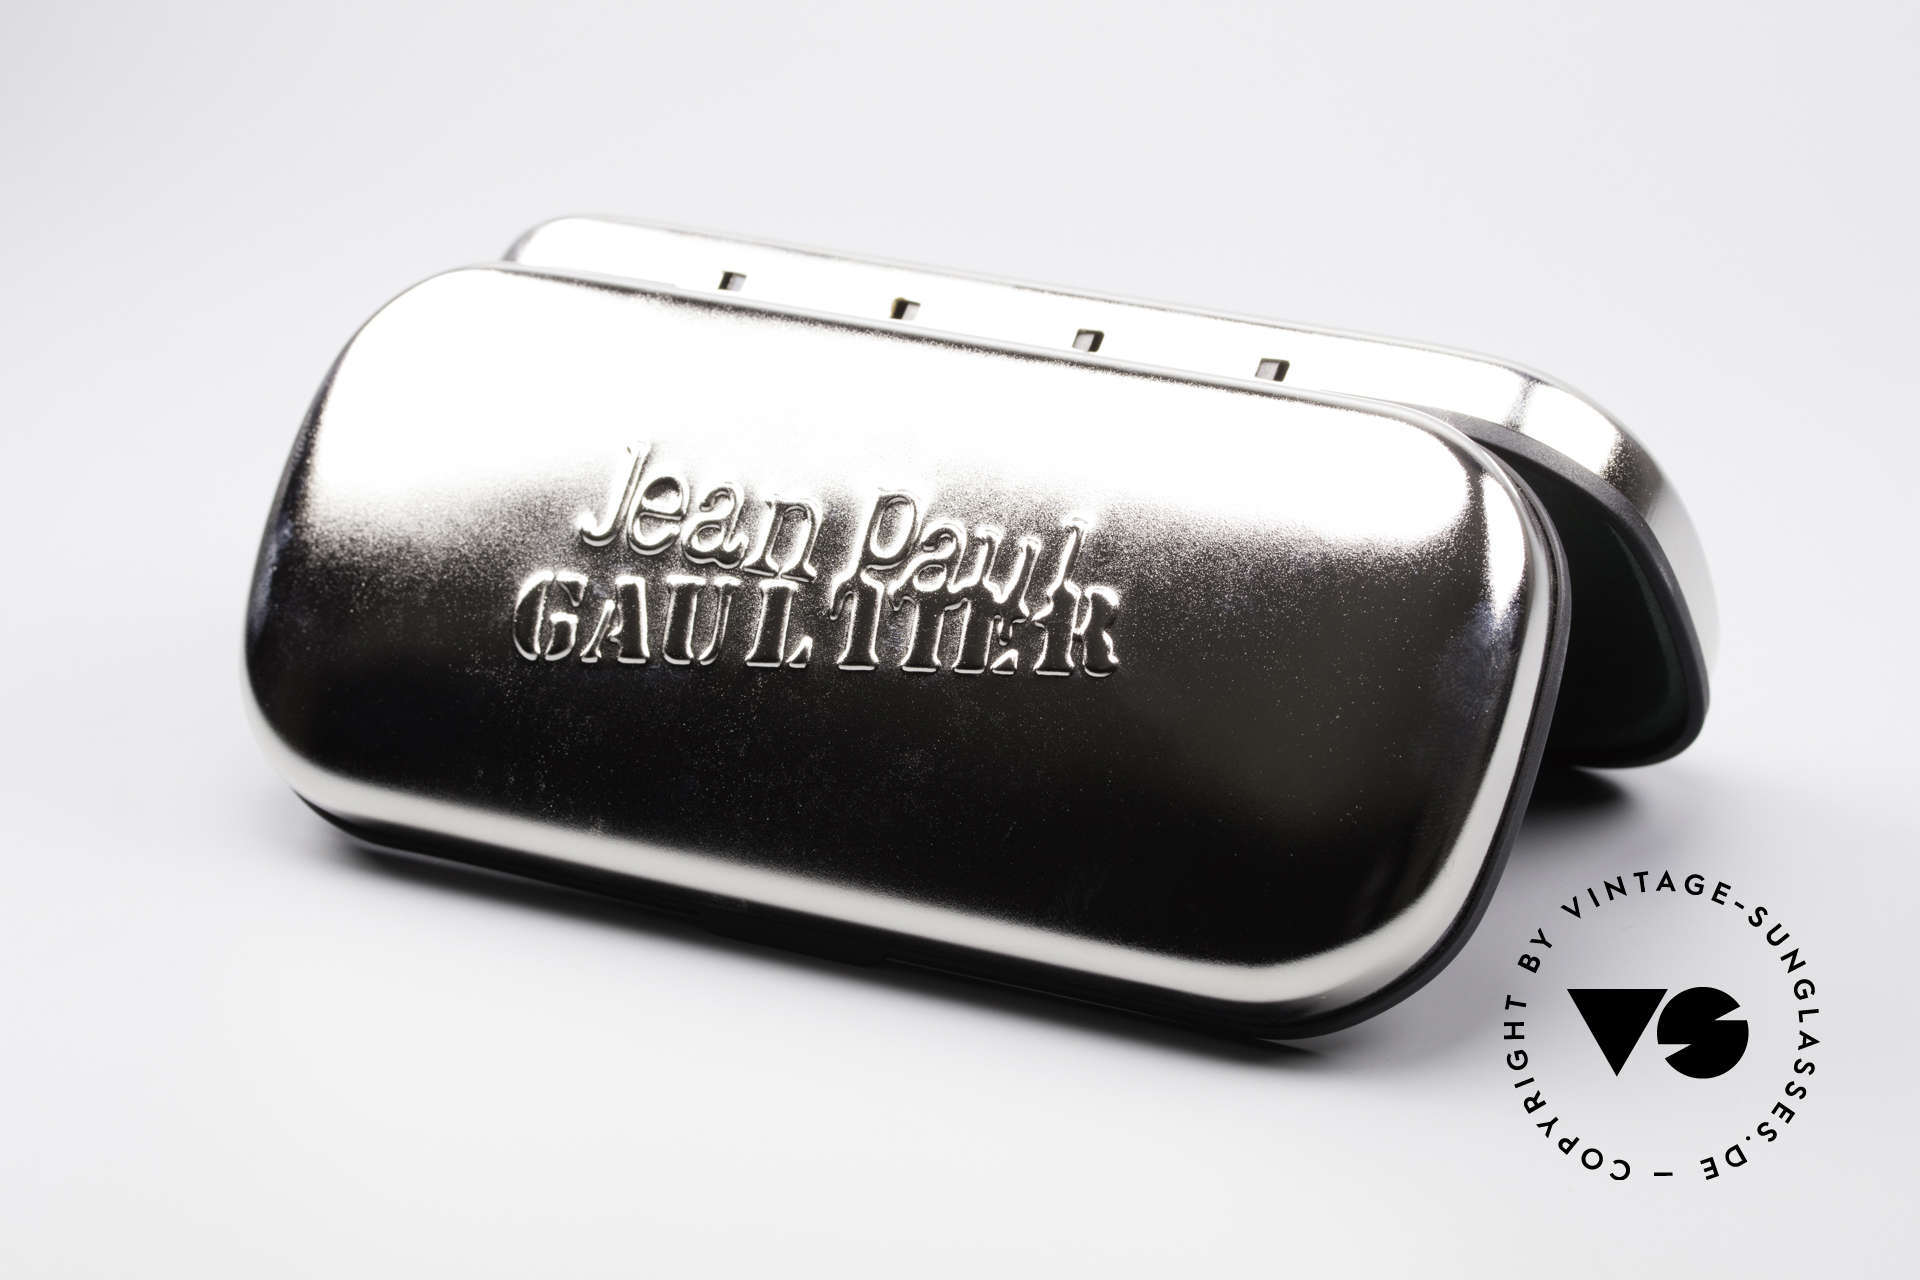 Jean Paul Gaultier 55-3178 90's Vintage No Retro Specs, Size: small, Made for Men and Women